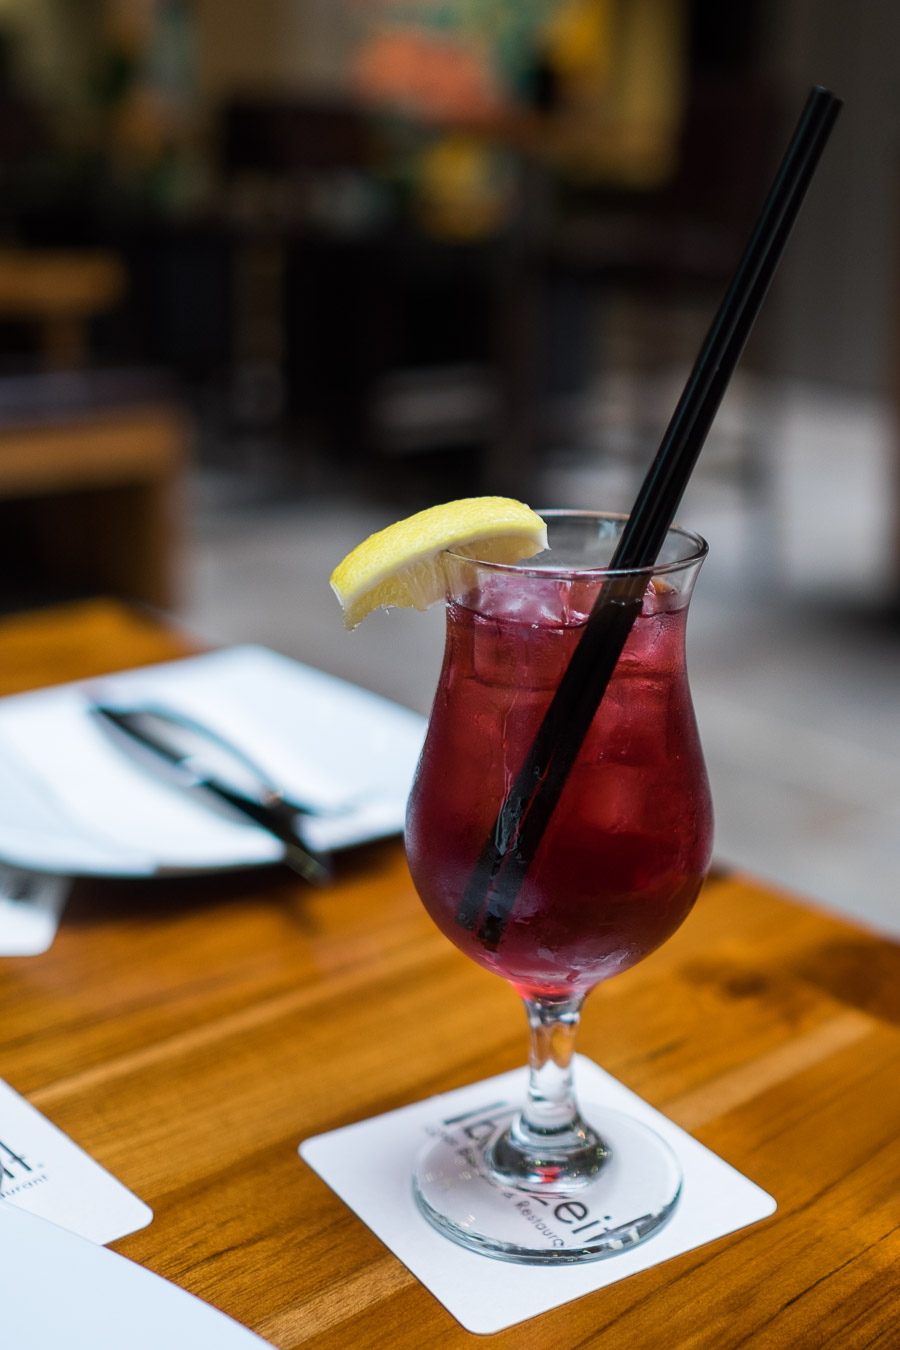 Little Red Dress (AU$16) - strawberry and lychee liqueur with vodka, blue alize and cranberry juice